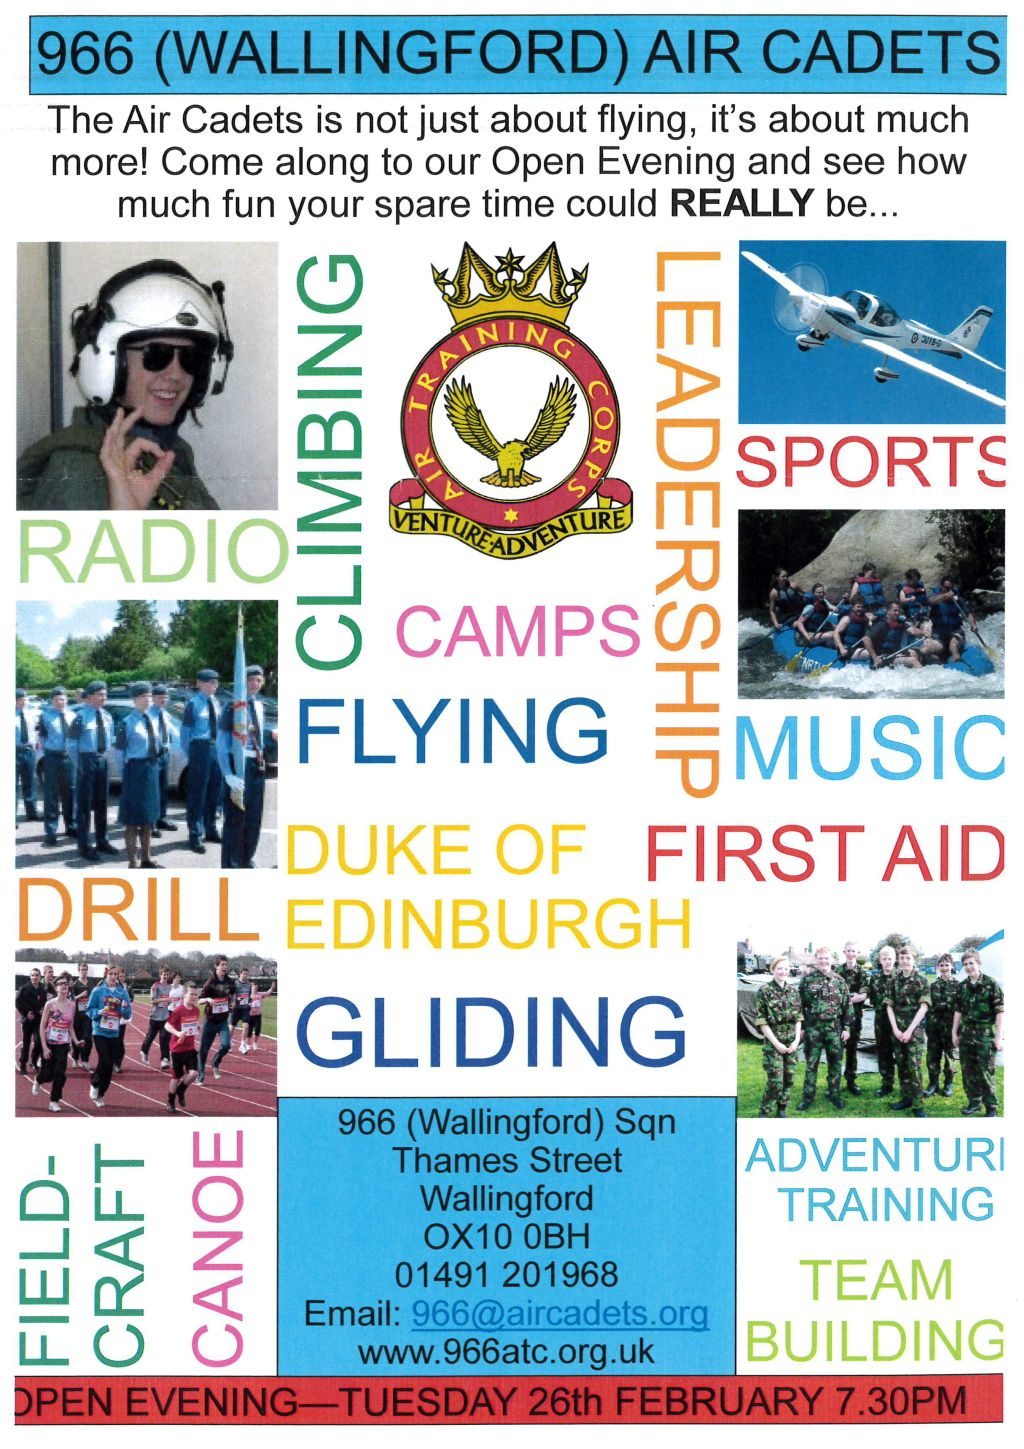 966 (Wallingford) Air Cadets Open Evening